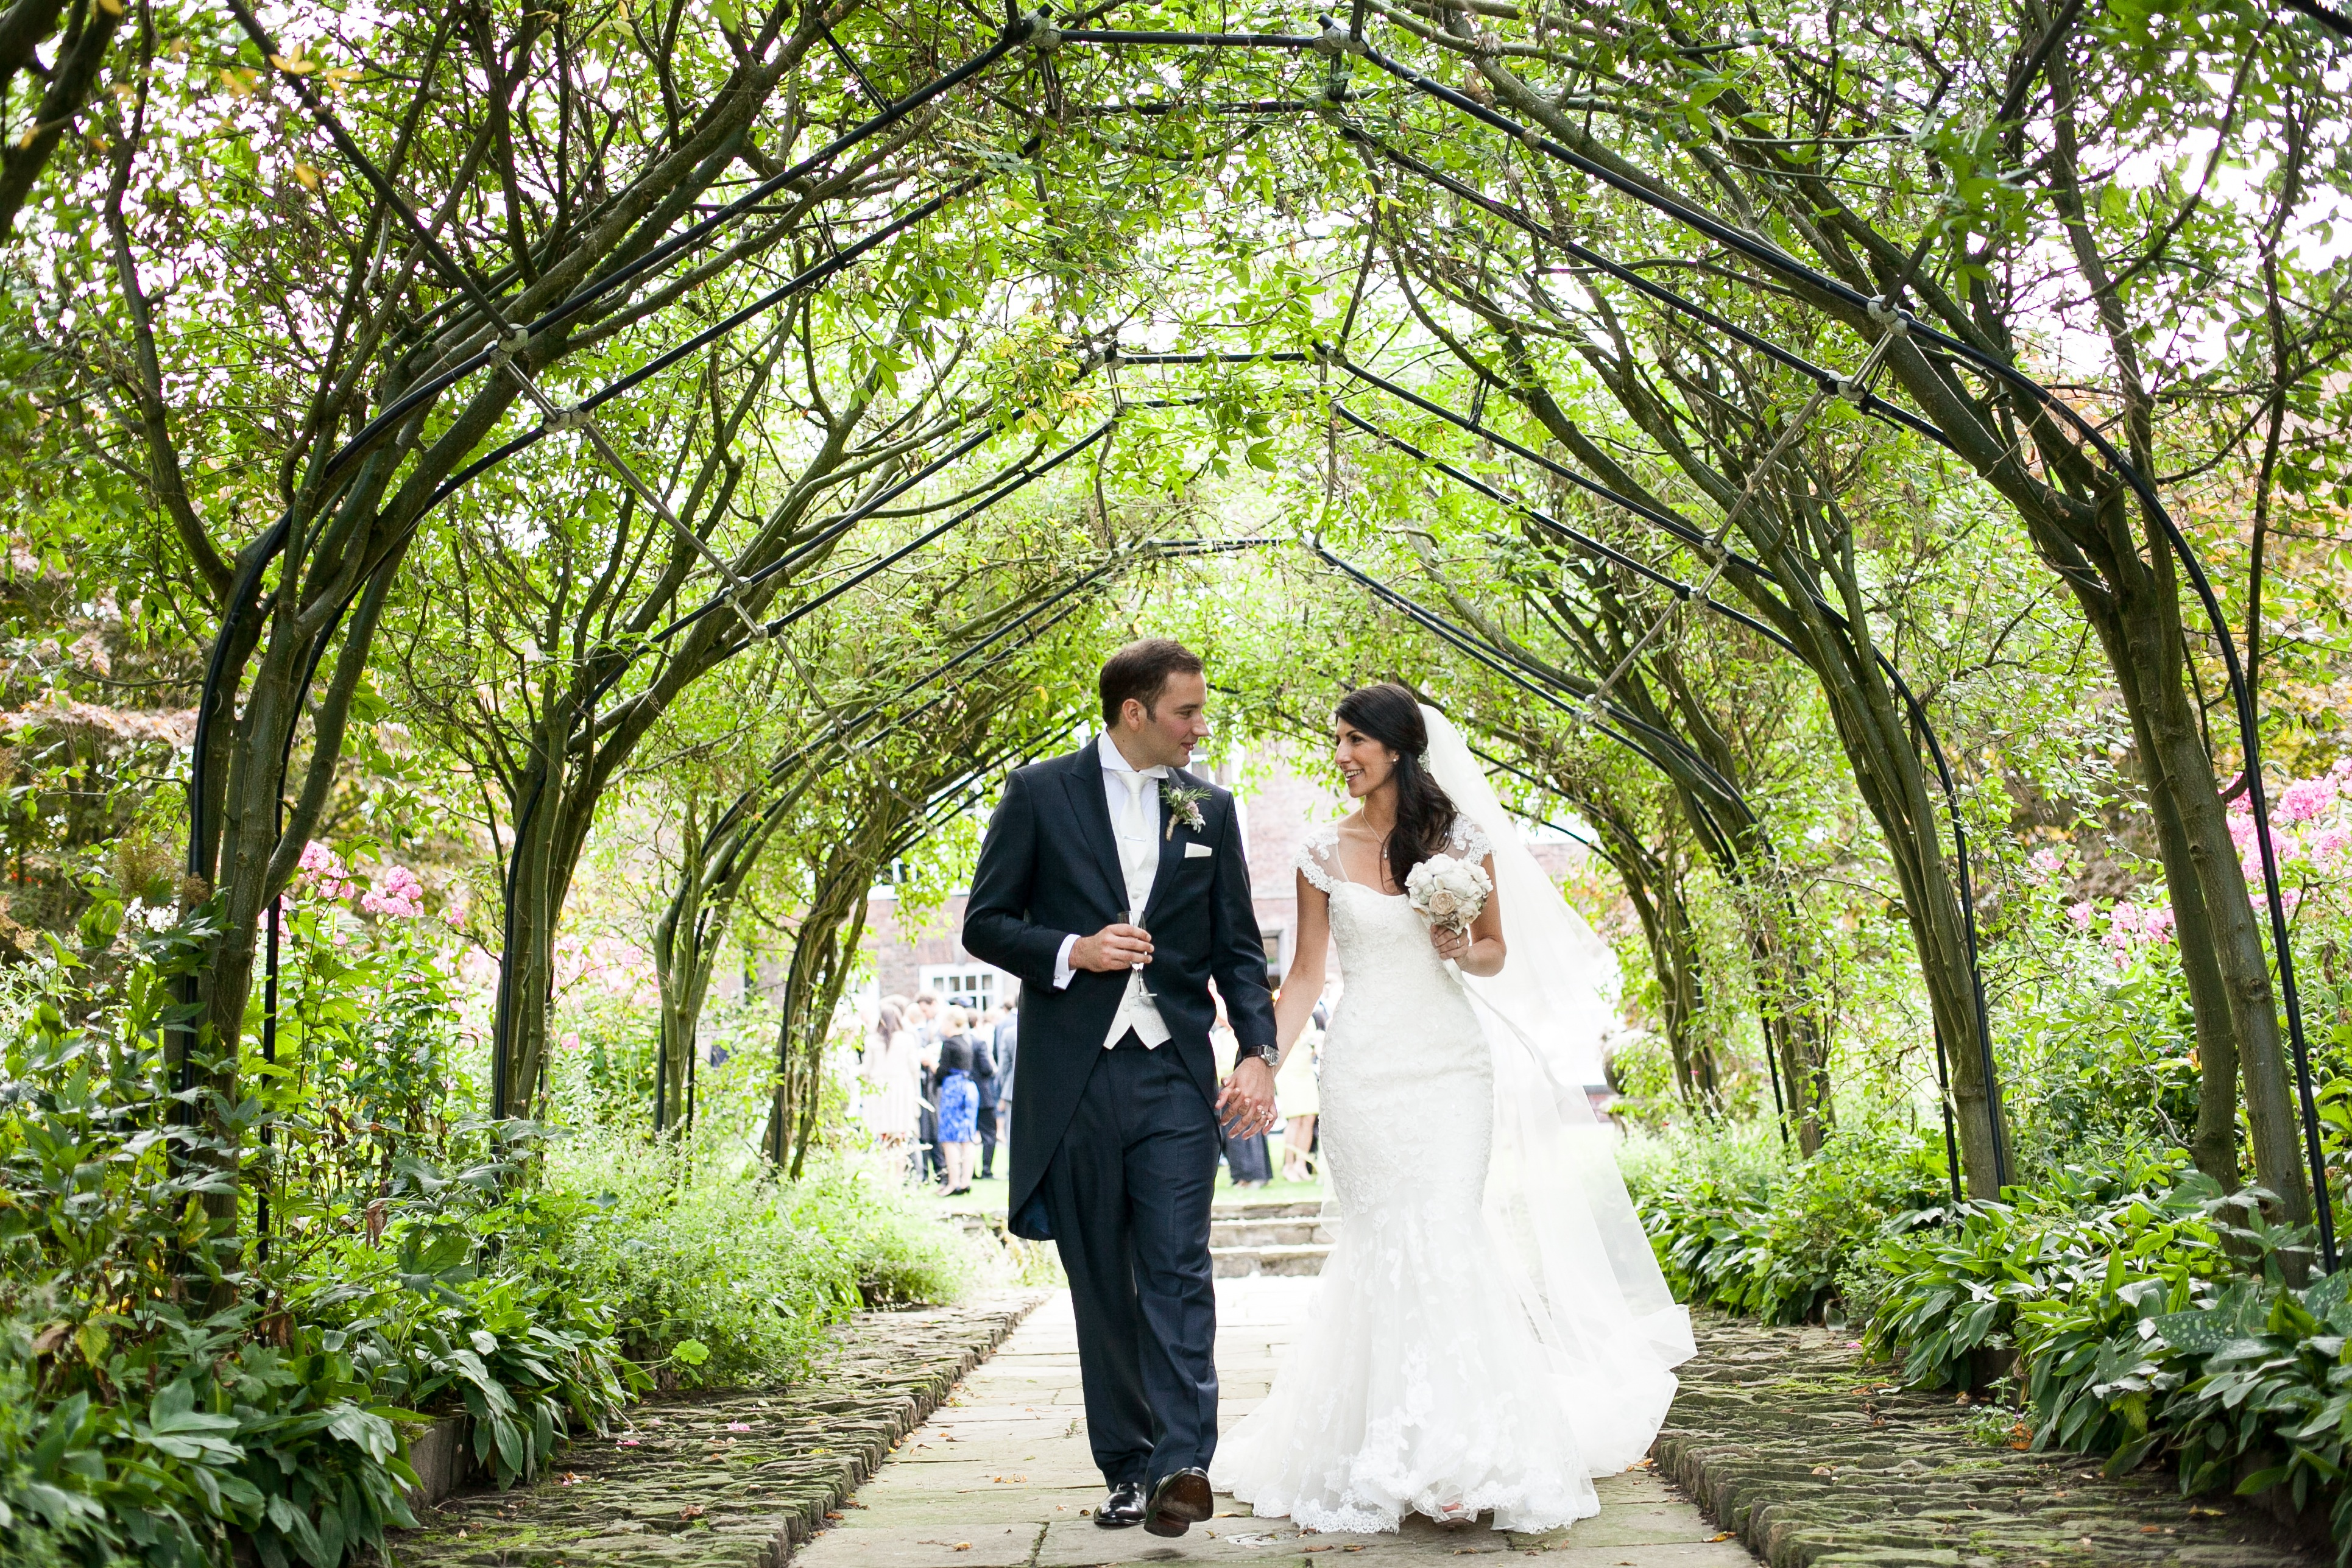 Outdoor Photography Wedding: Exclusive Outdoor/Garden Wedding Venues In Cheshire, North